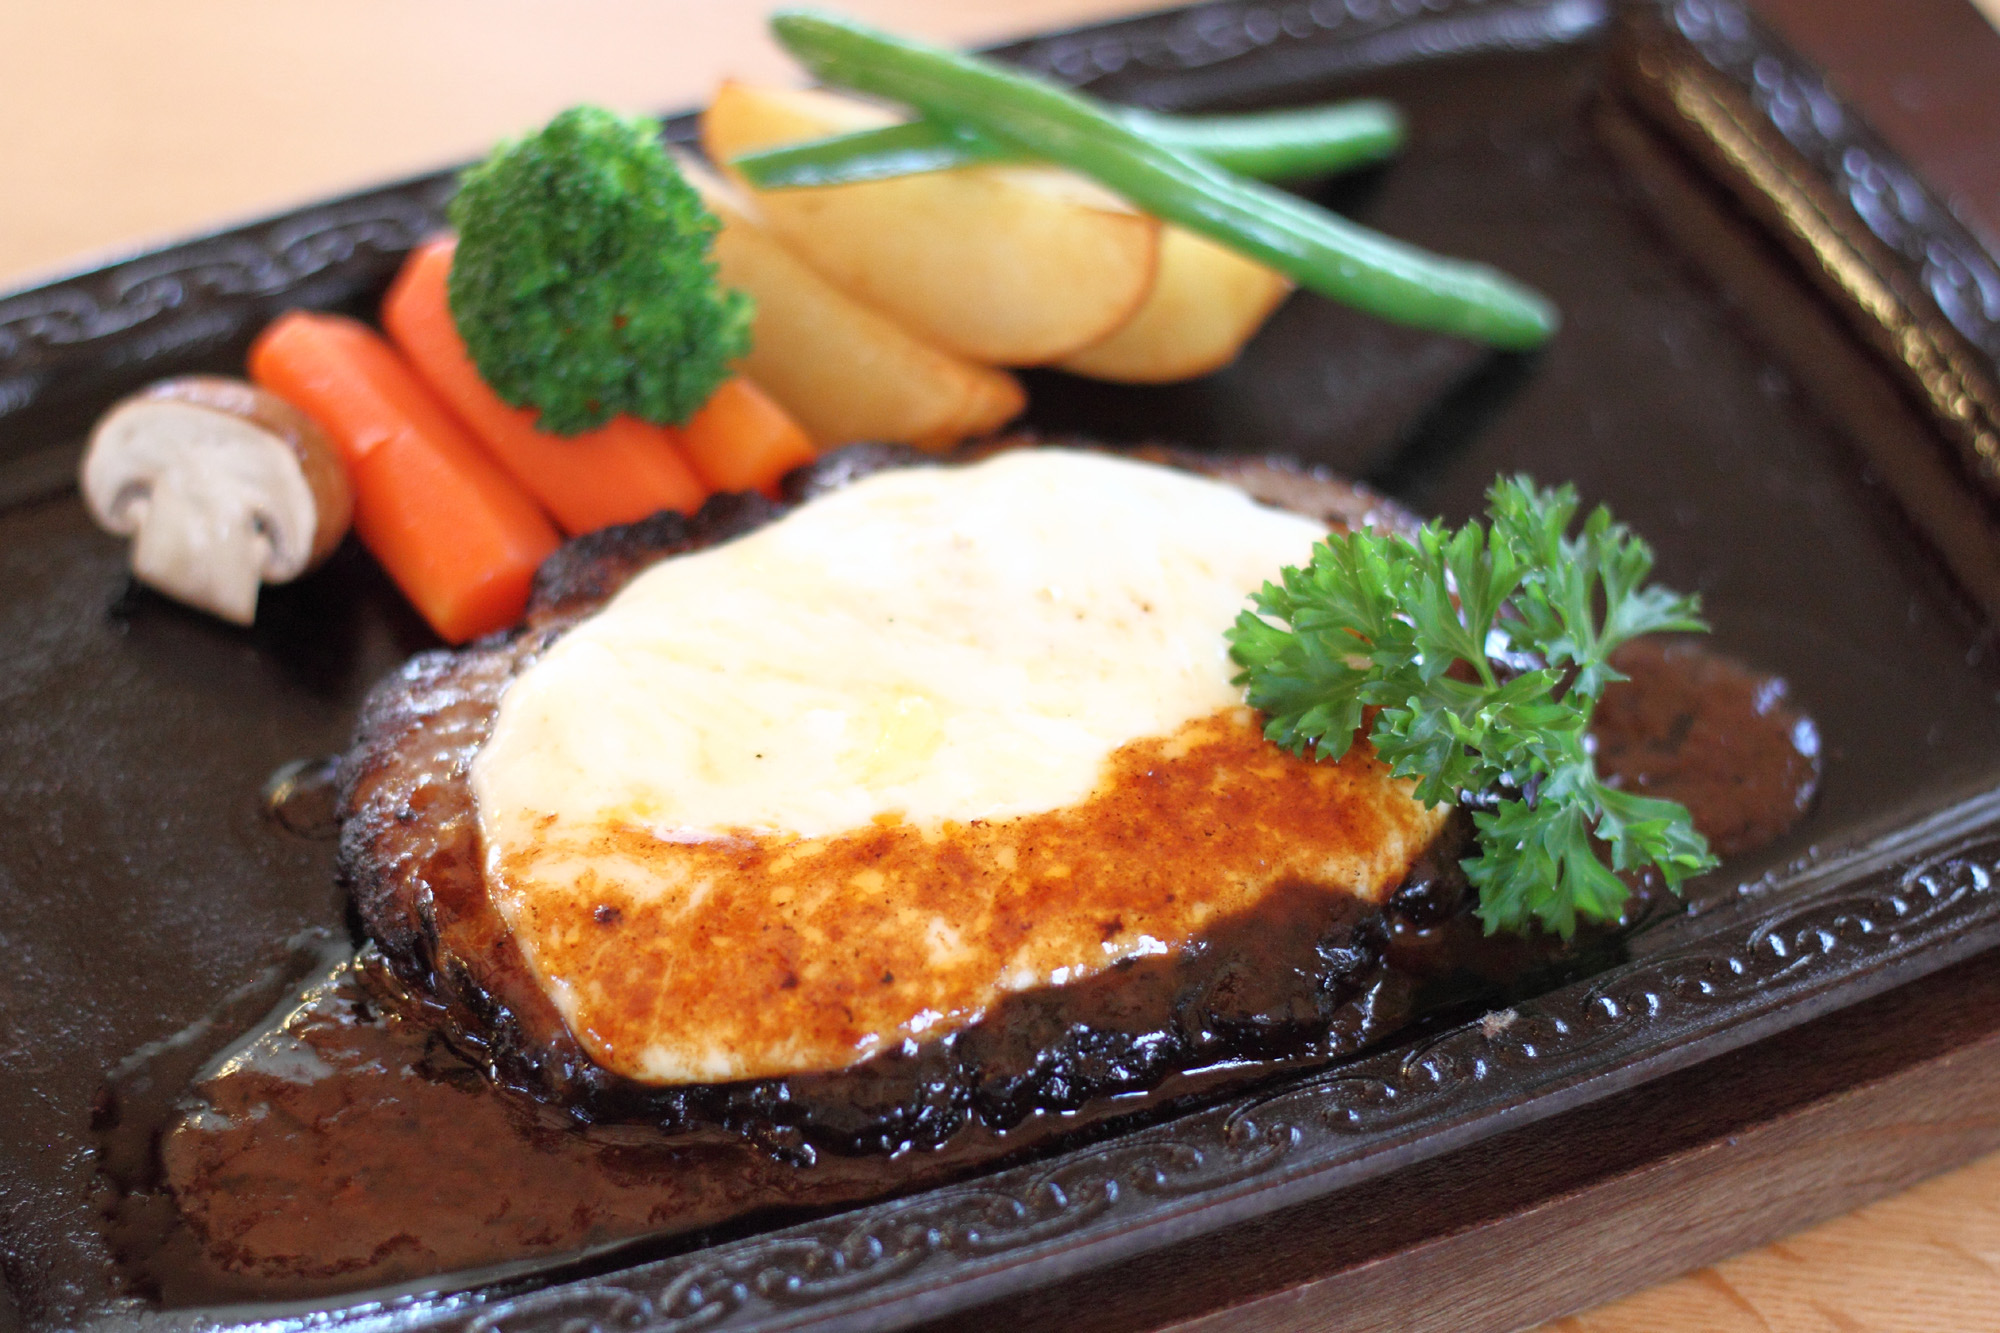 A Ranch-Run Restaurant Serving Mouthwatering Short-Horned Wagyu Beef at Reasonable Prices!